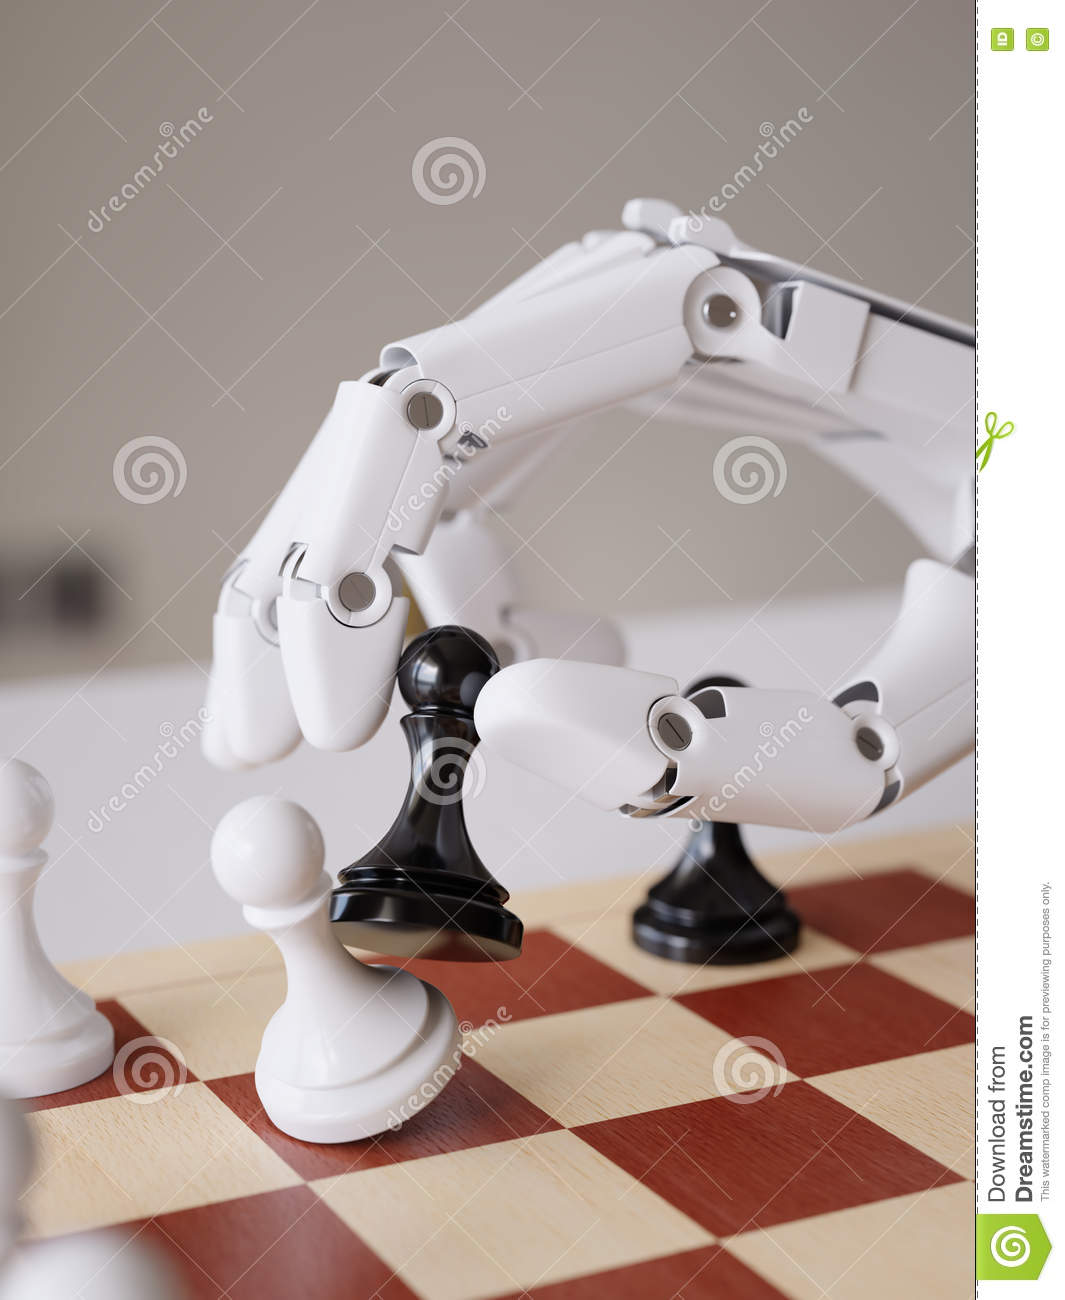 Artificial Intelligence Playing Chess 3d Illustration Concept